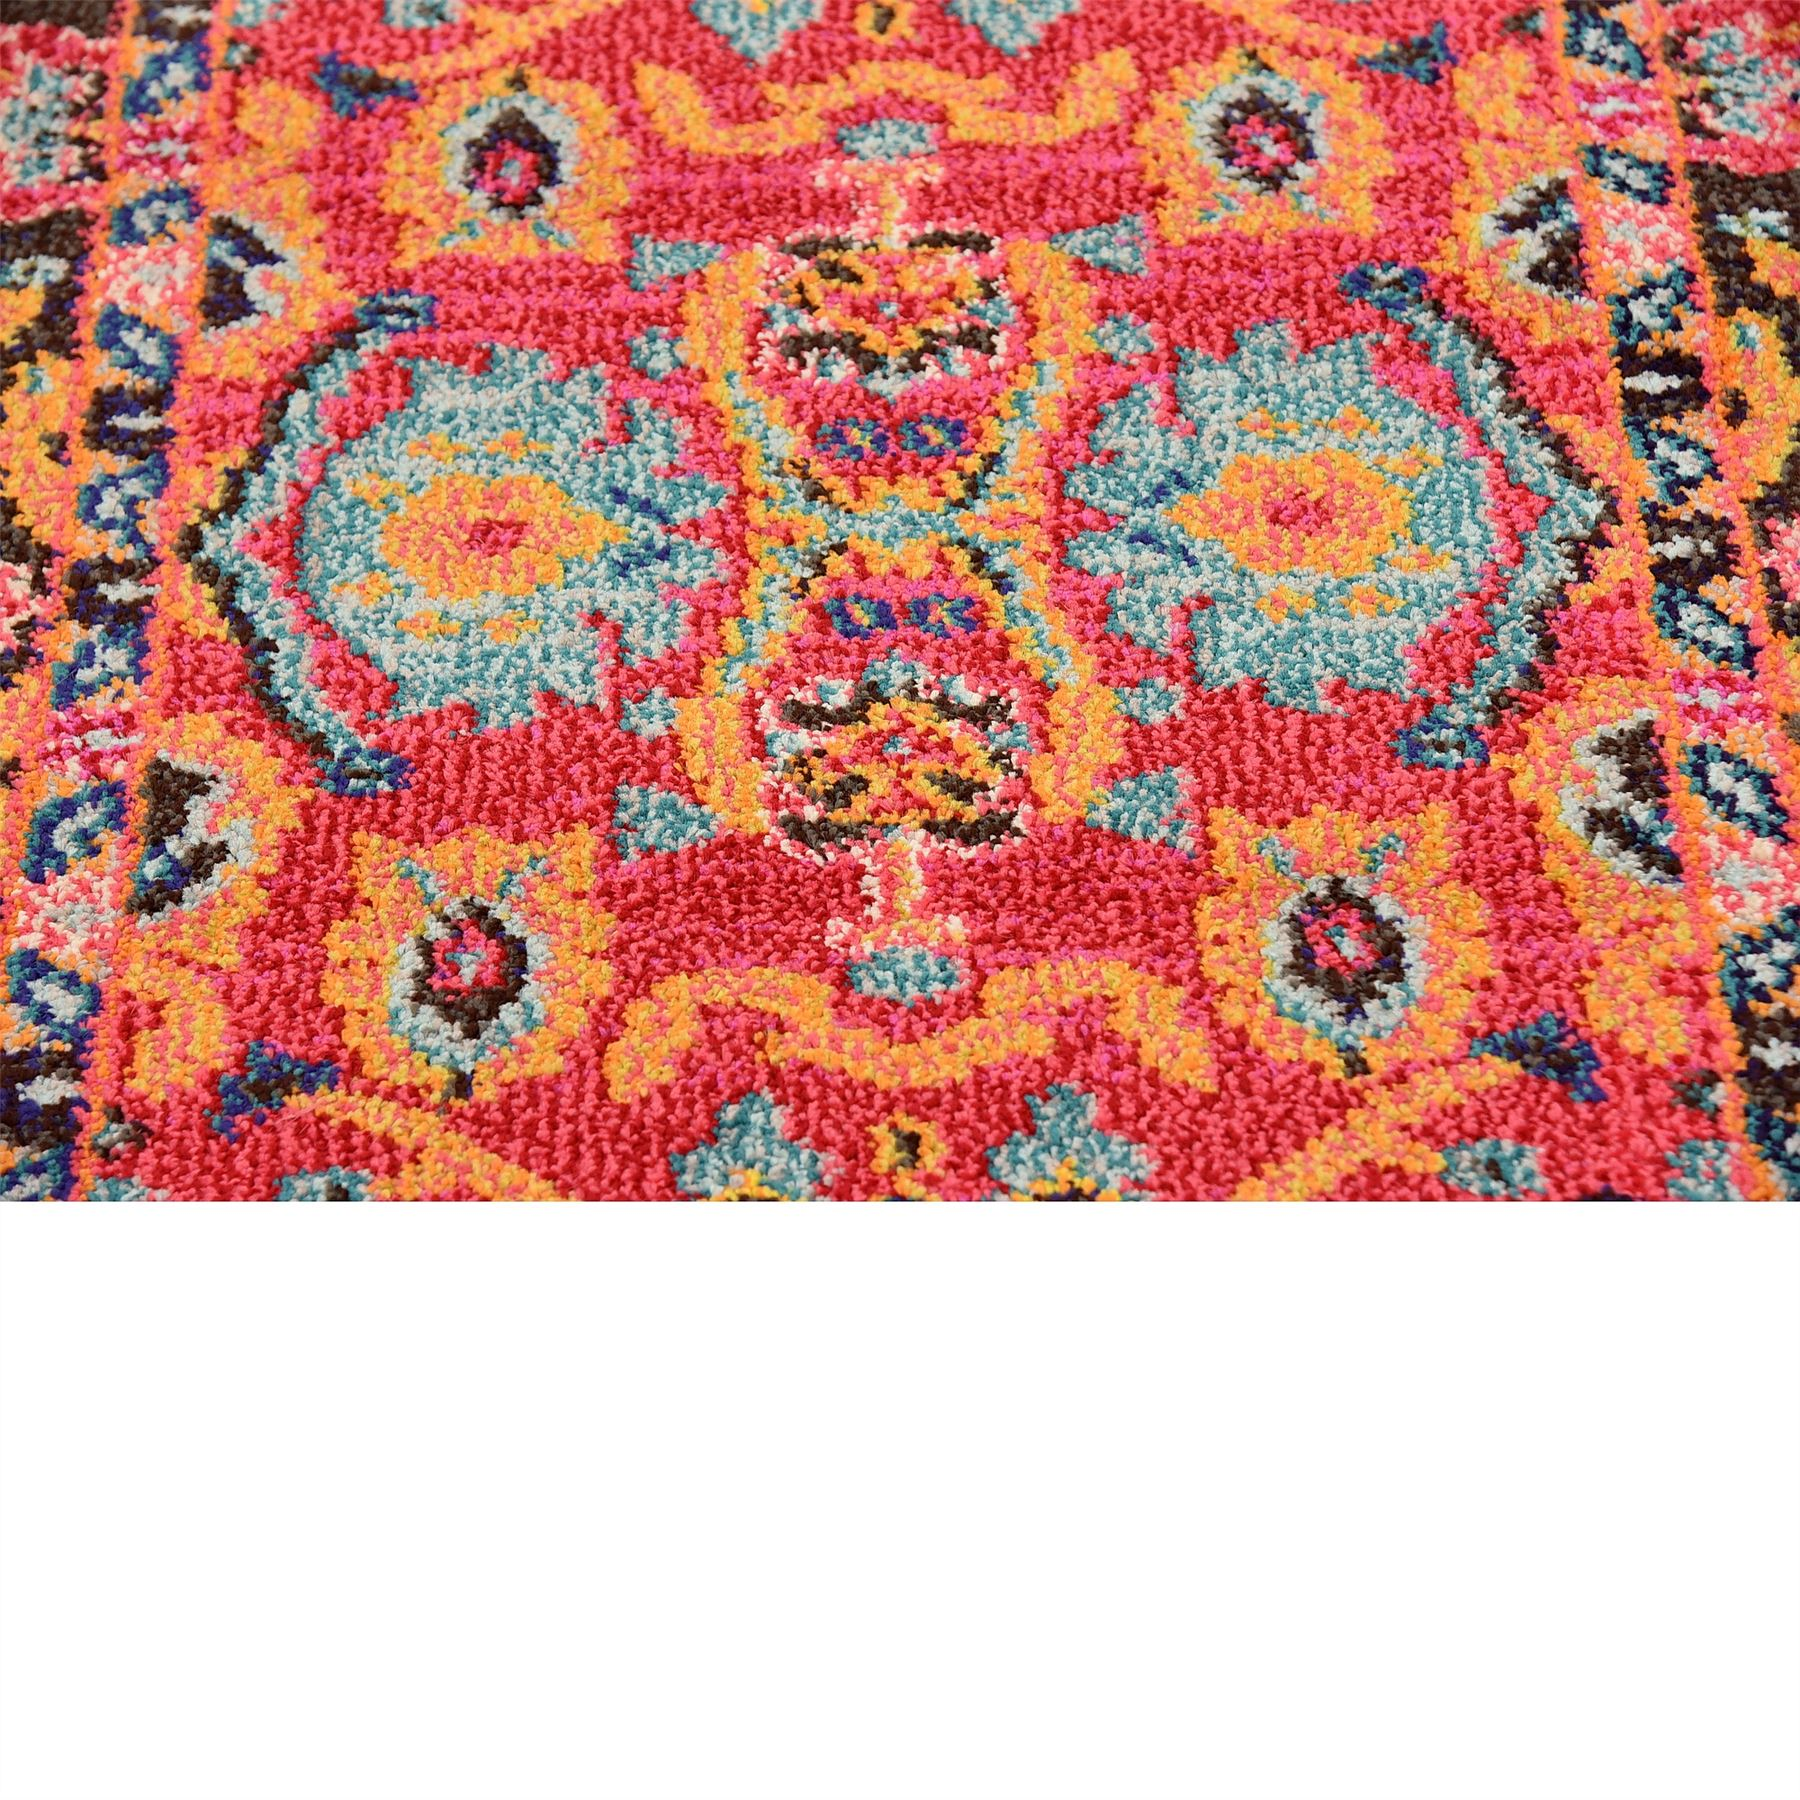 Traditional Botenical Floral Design Carpet Contemporary